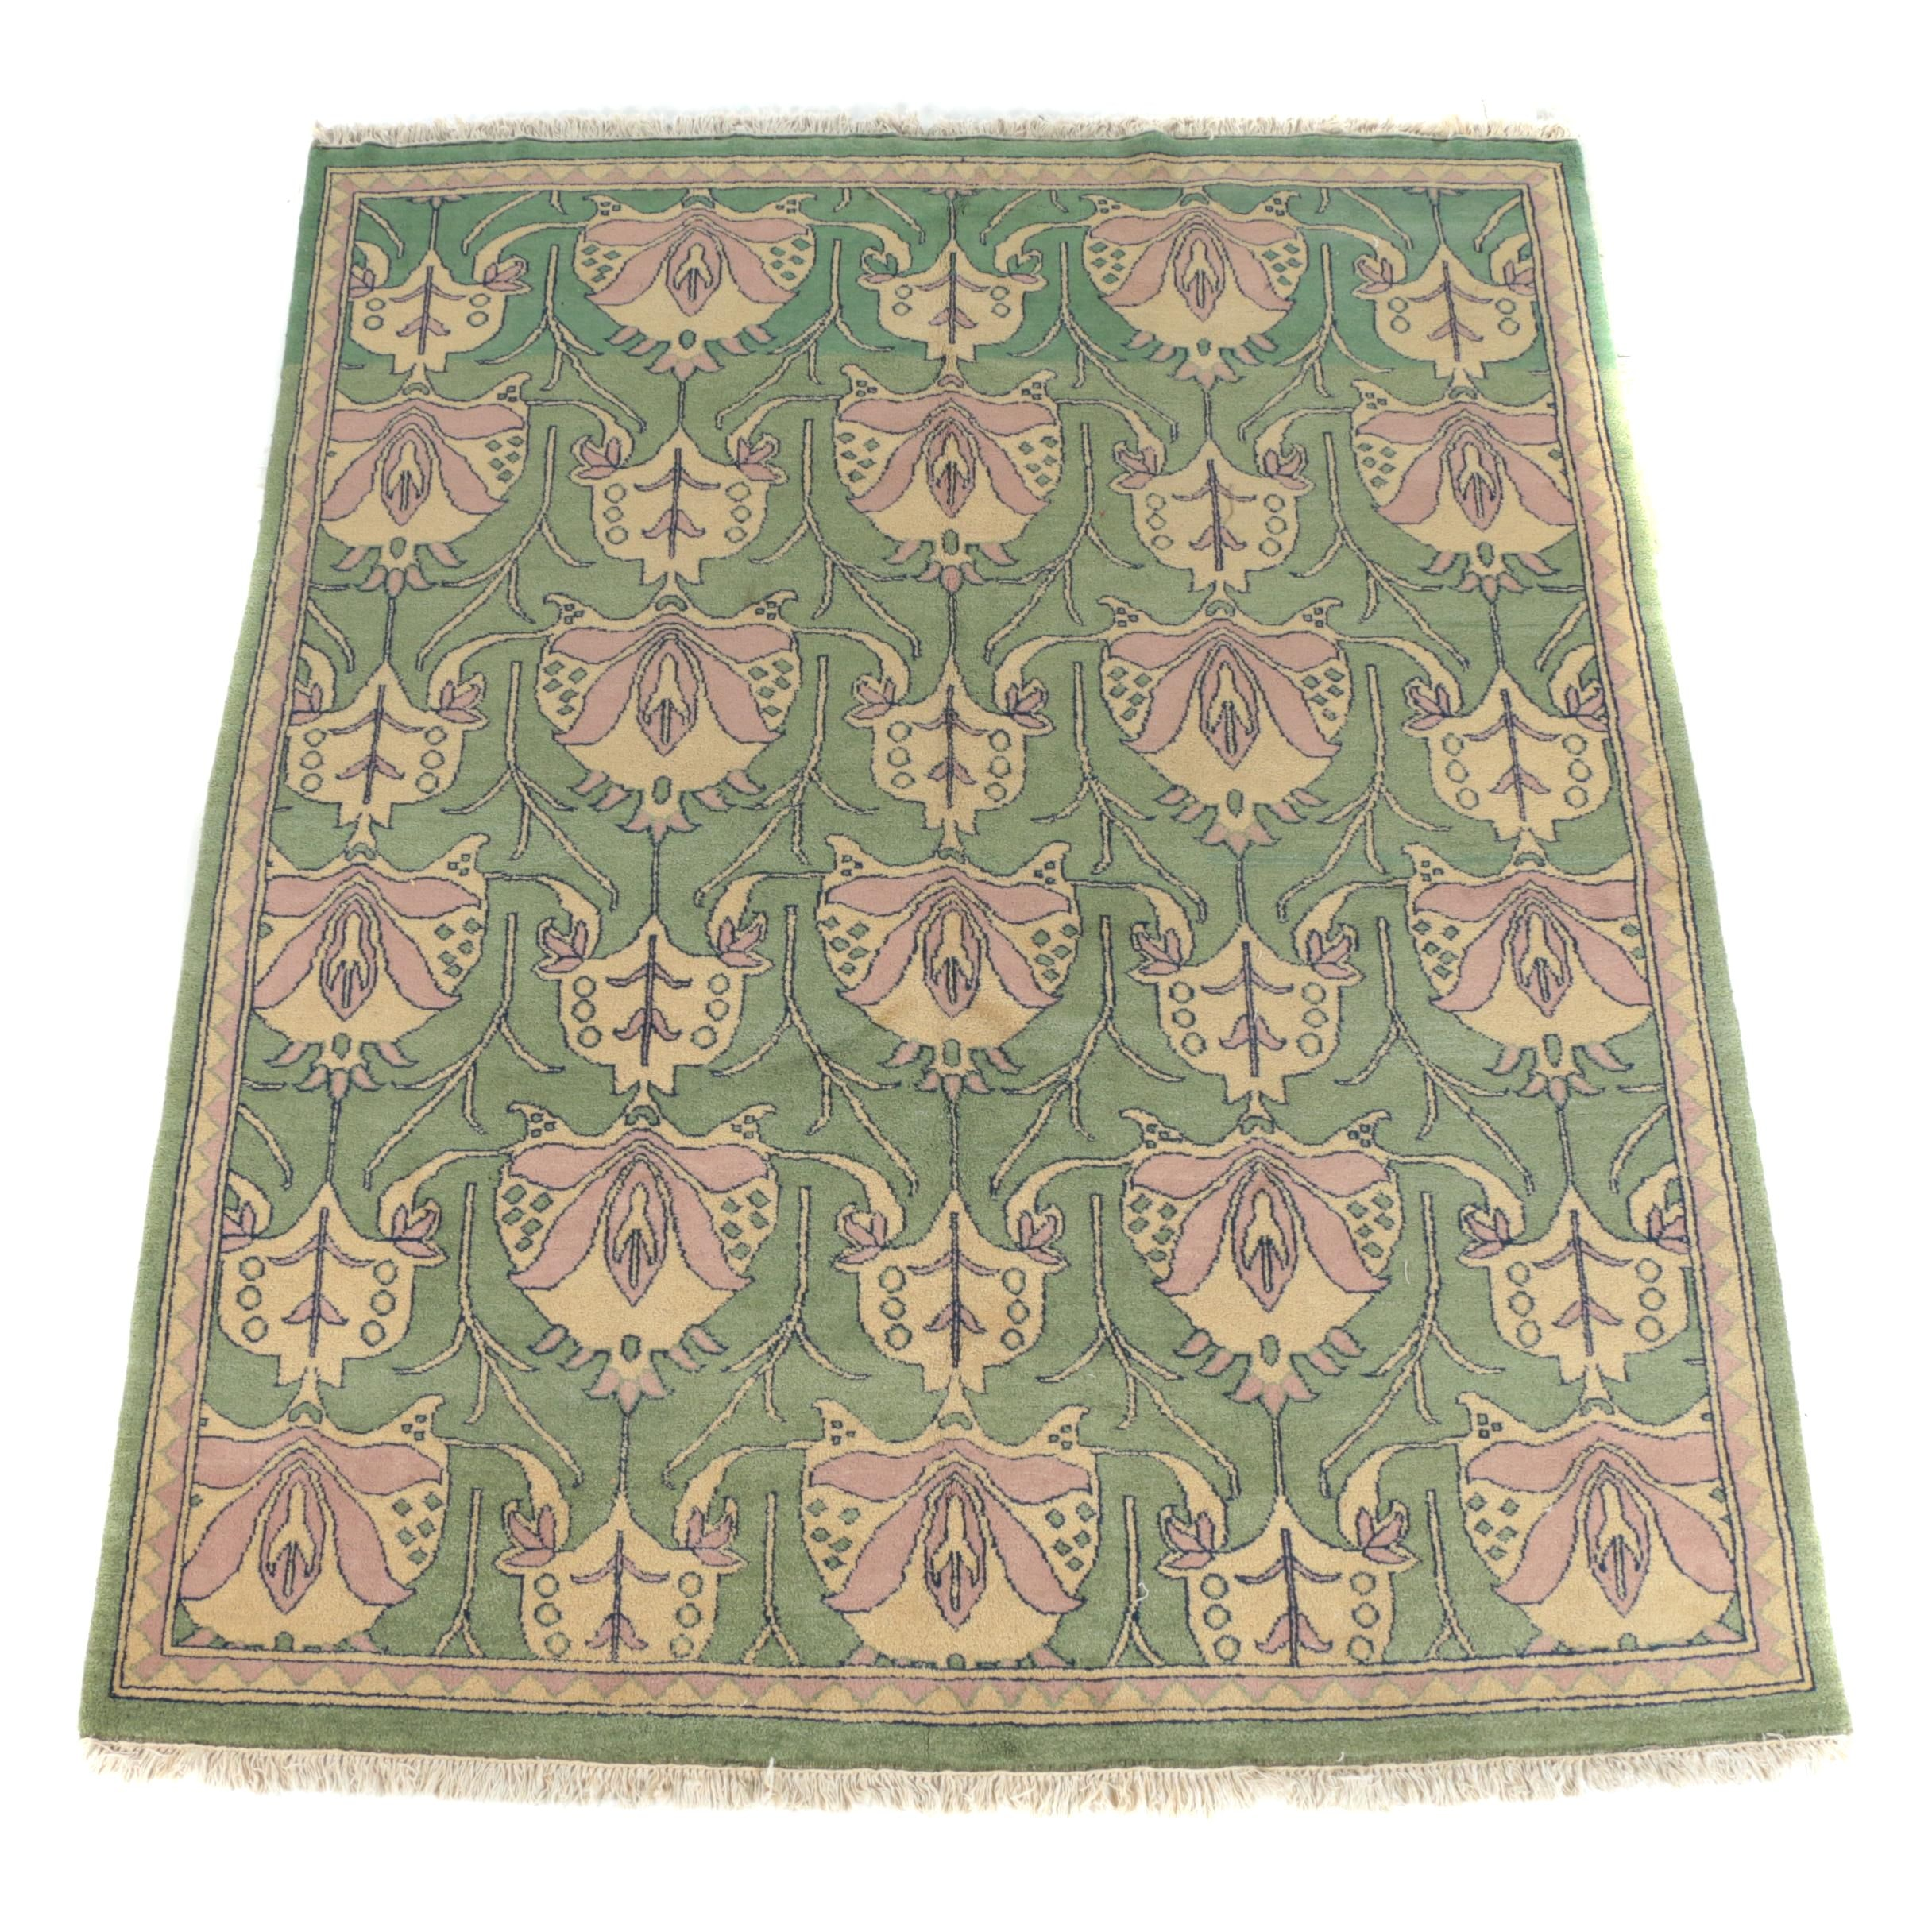 Vintage Hand-Knotted Arts and Crafts-Style Wool Area Rug